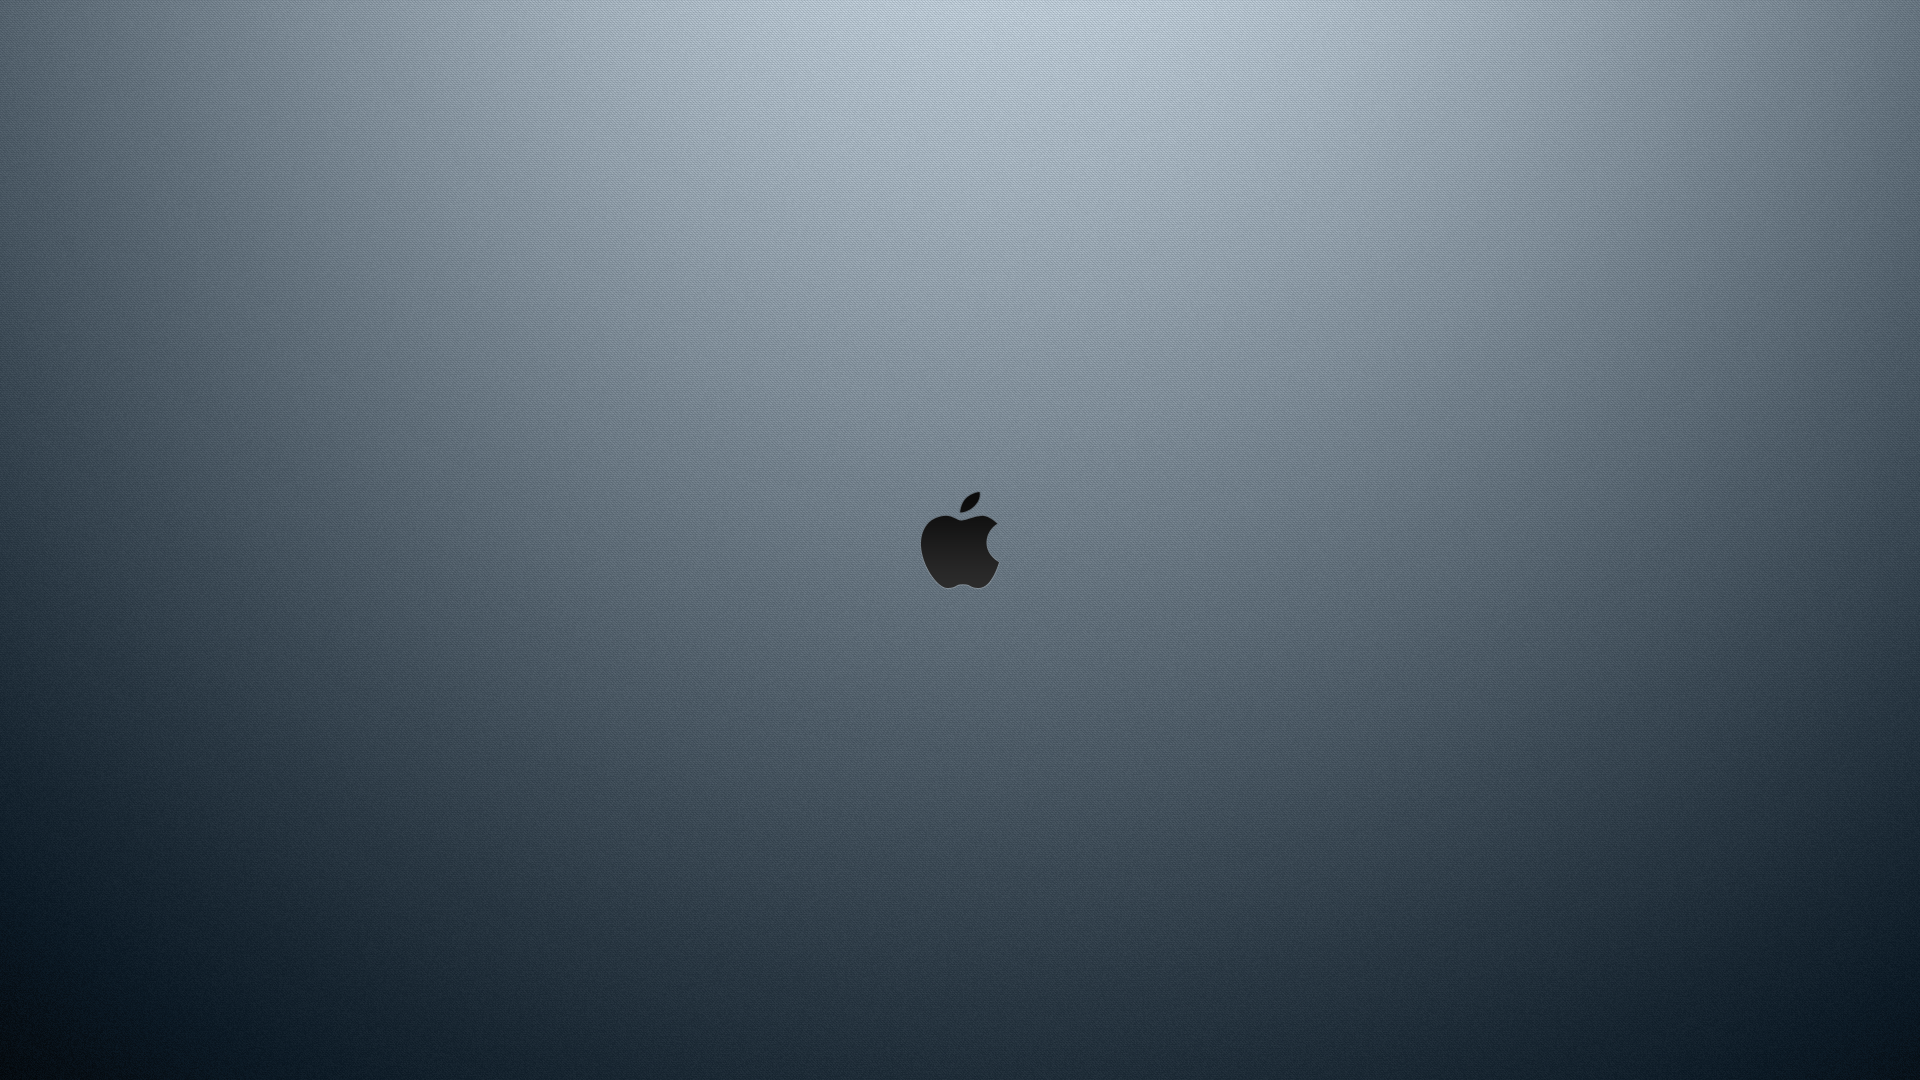 Apple Os X Gradient Wallpaper Hd Wallpapers